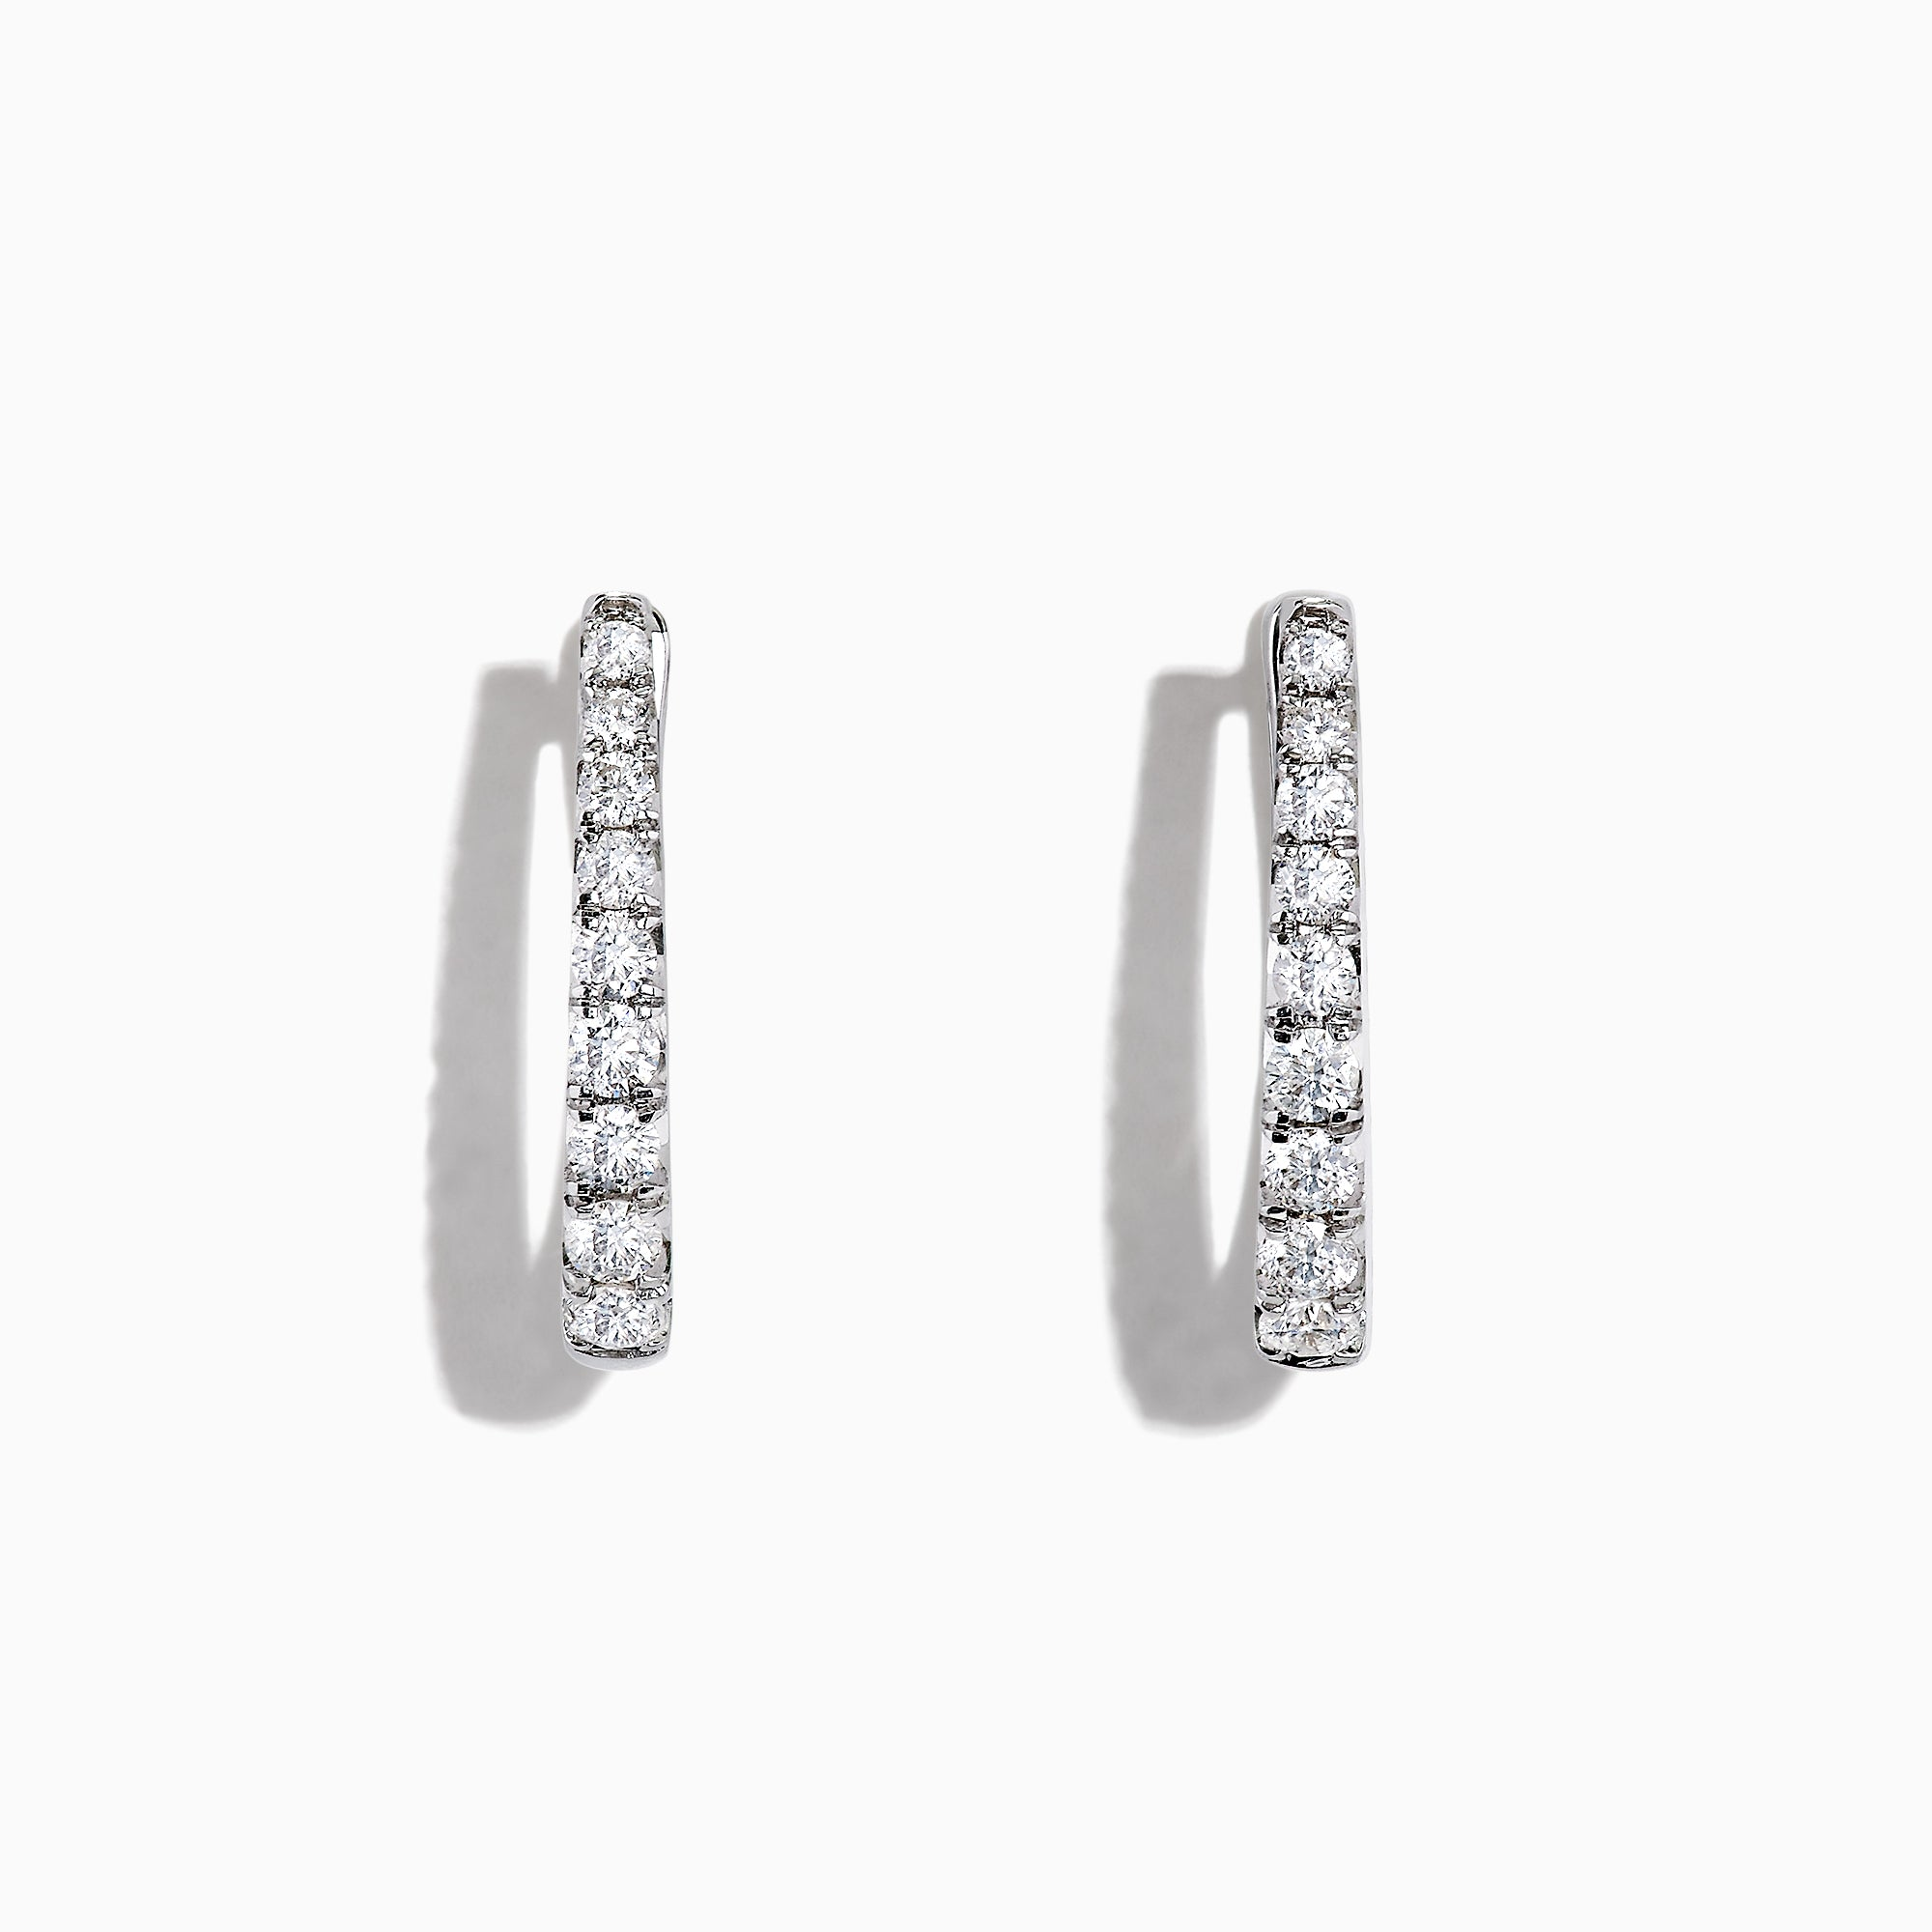 Effy Pave Classica 14K White Gold Diamond Hoop Earrings, 0.49 TCW